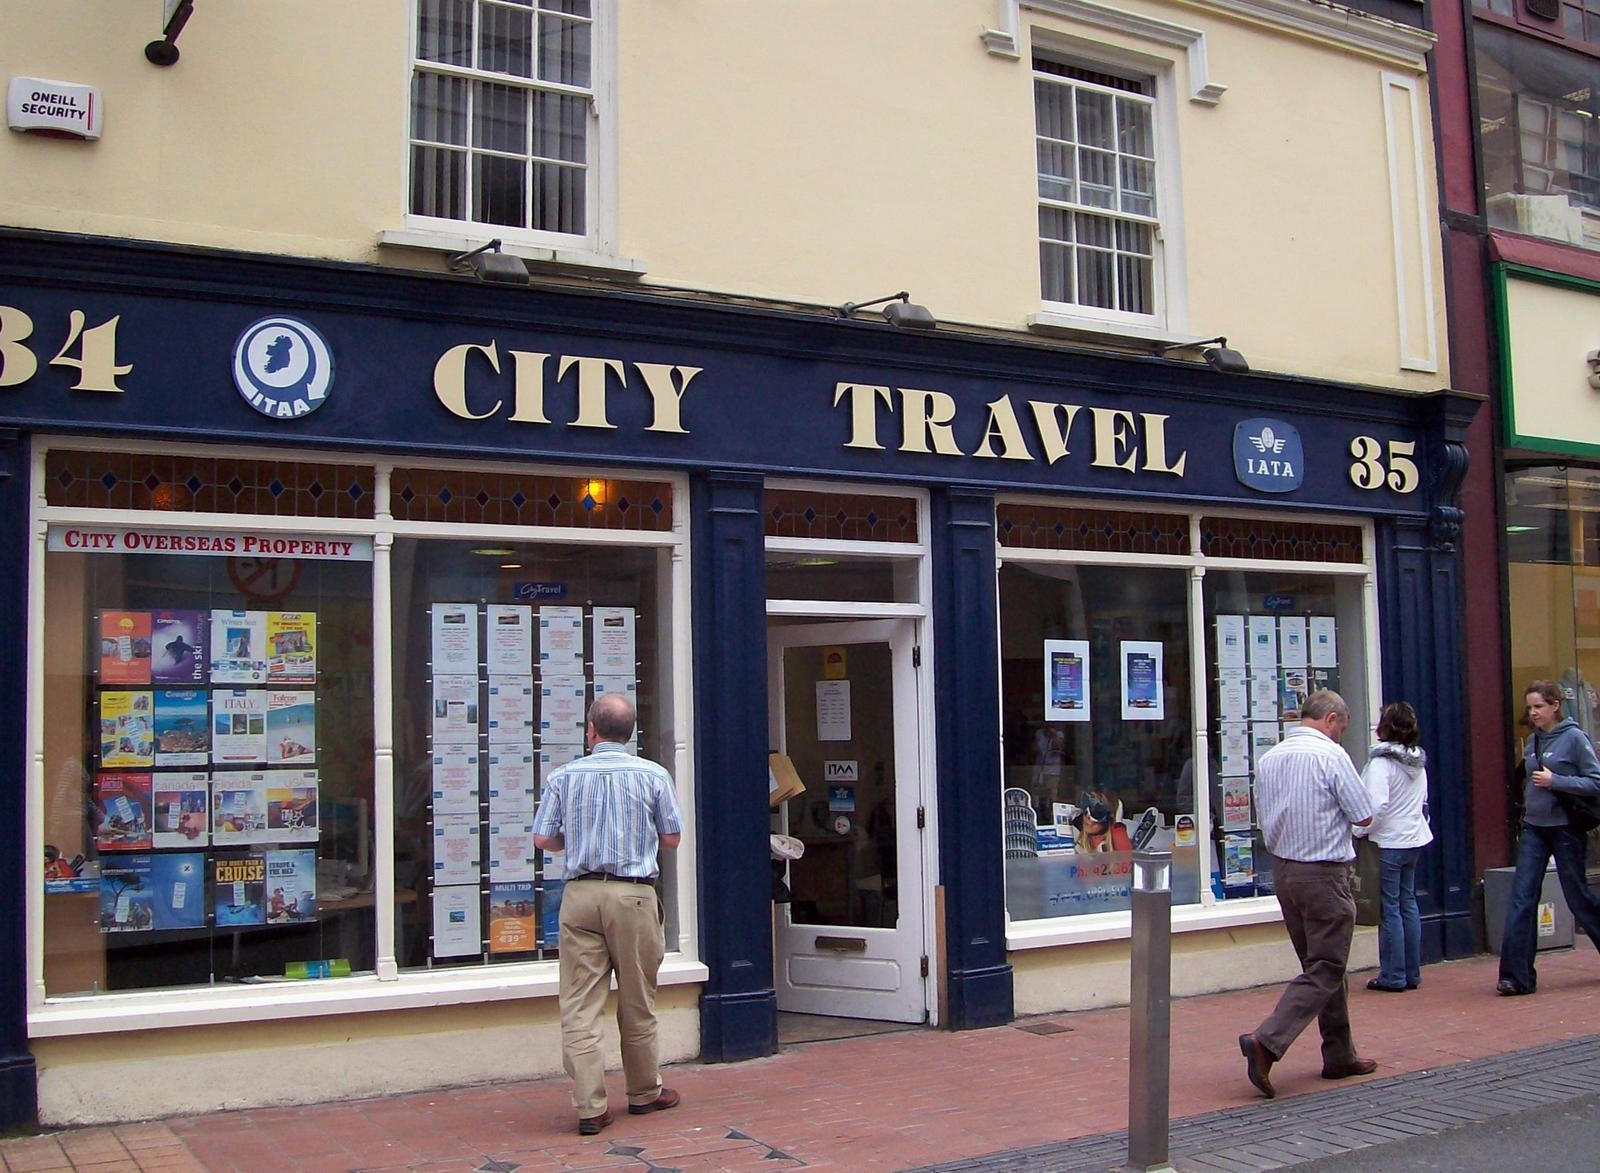 City Travel - Cork - Irland